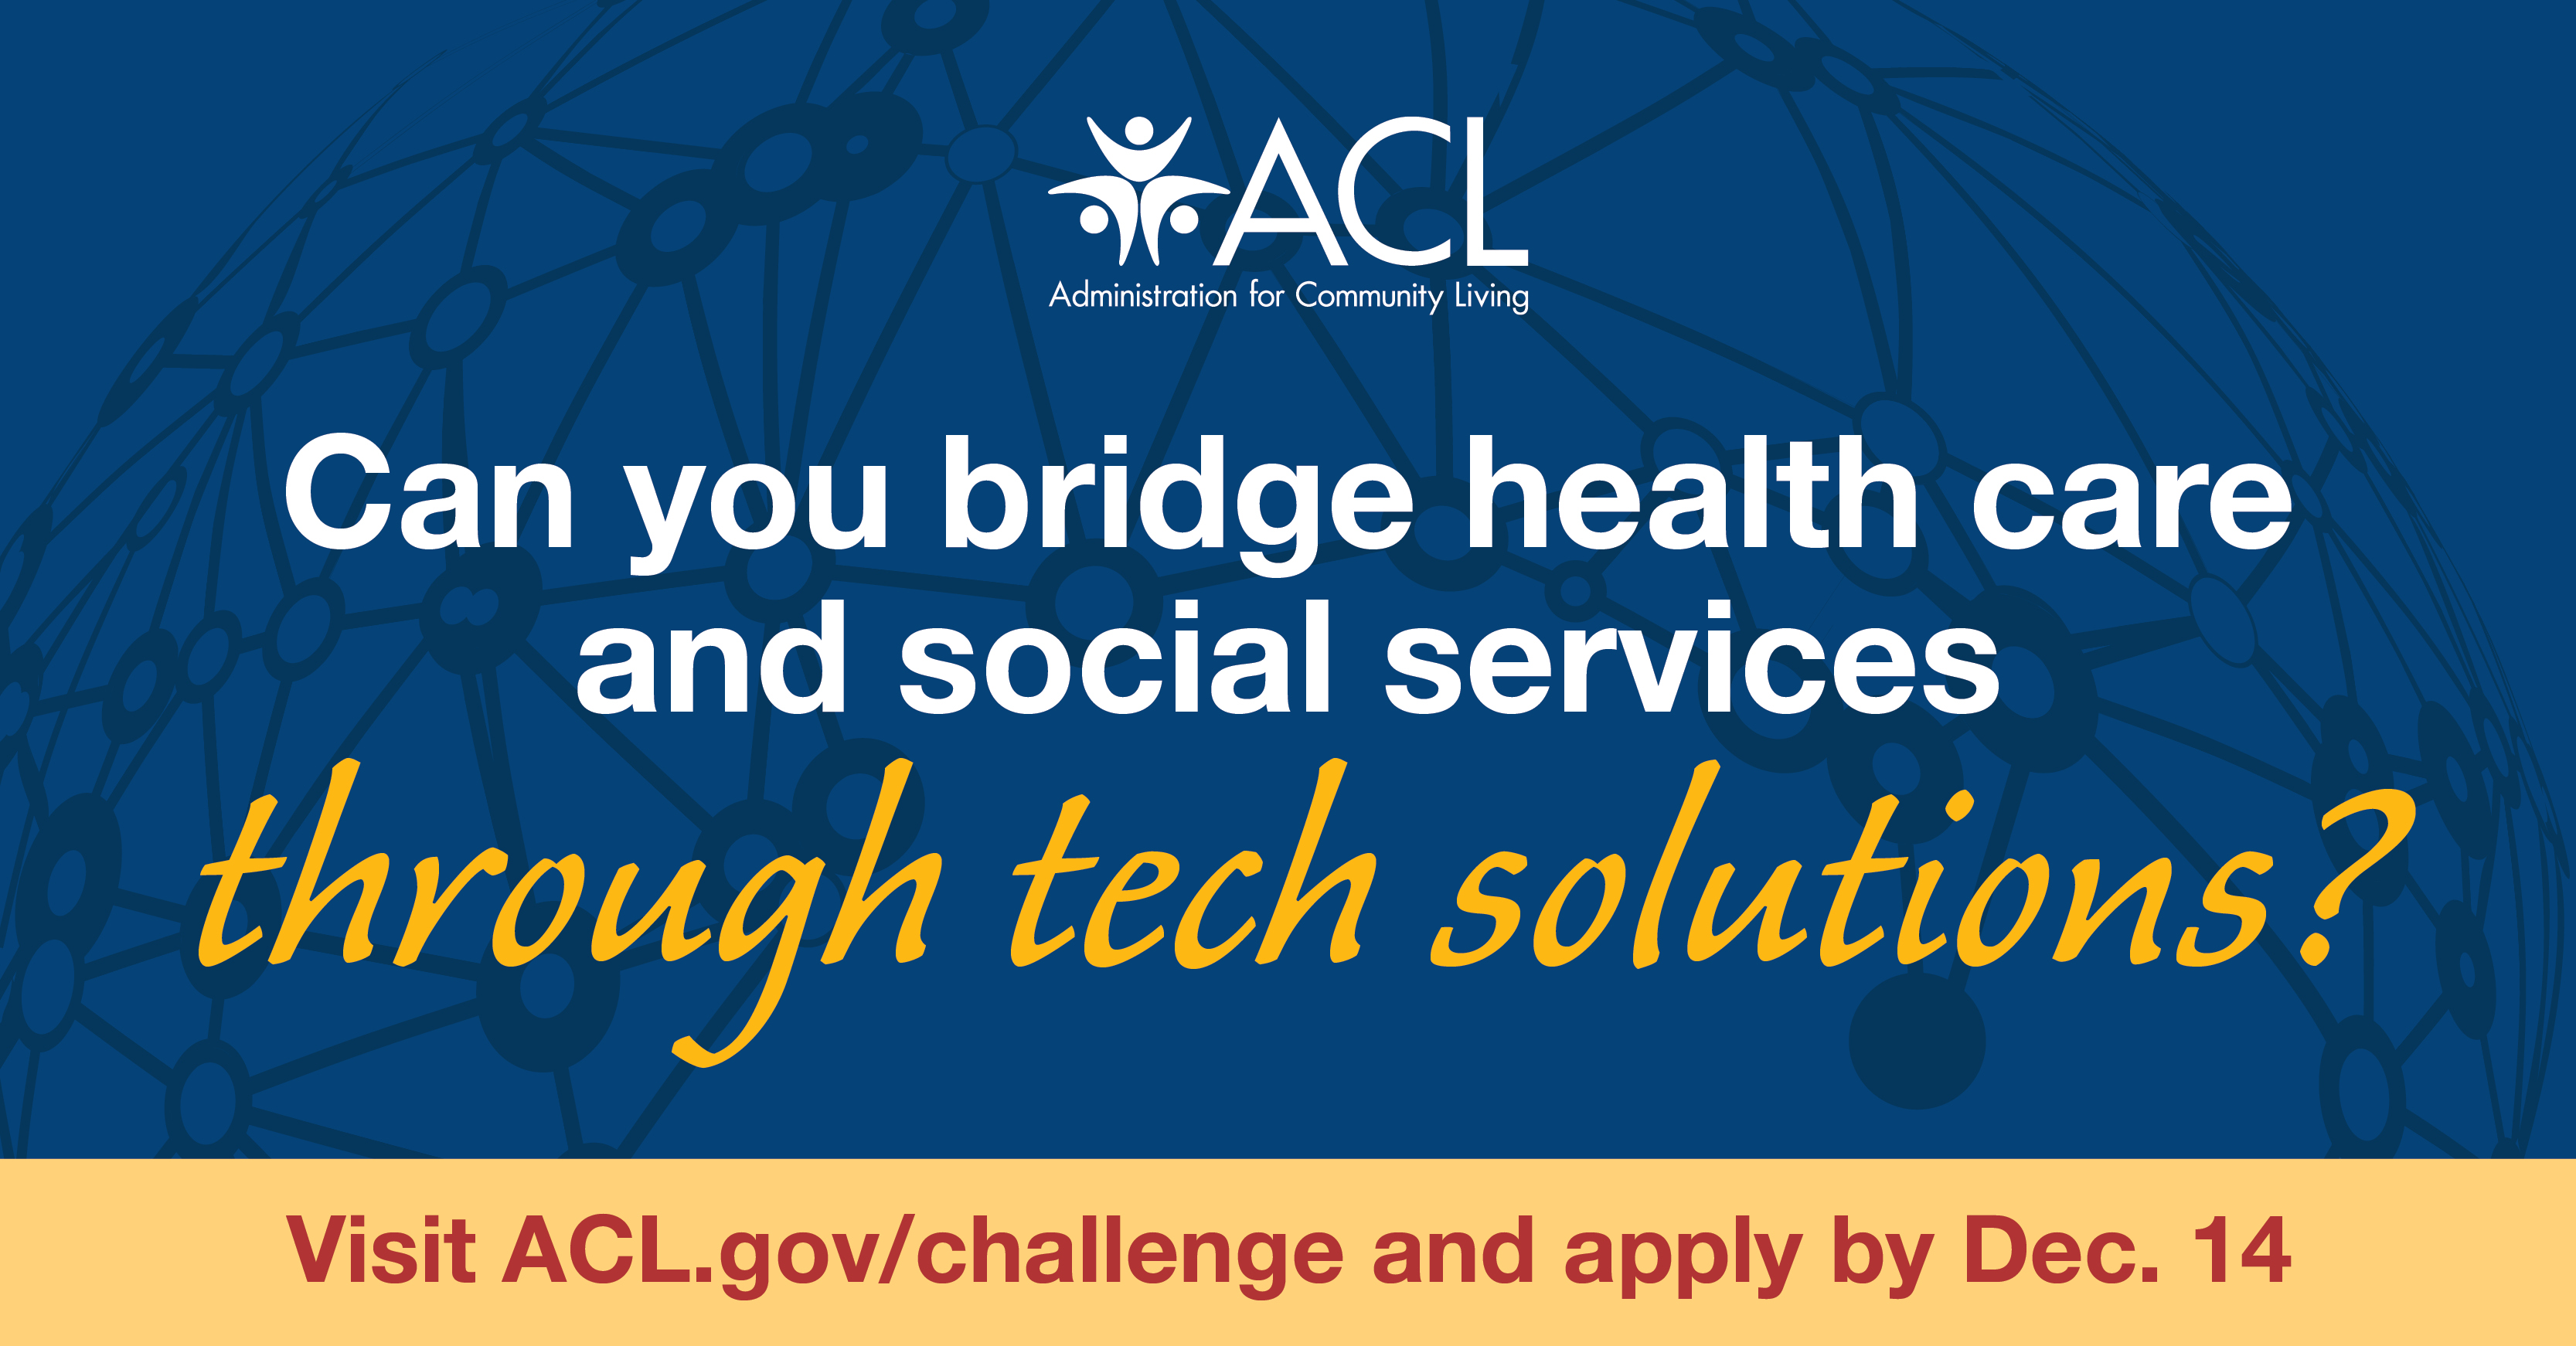 Can you bridge health care and social services through tech solutions?